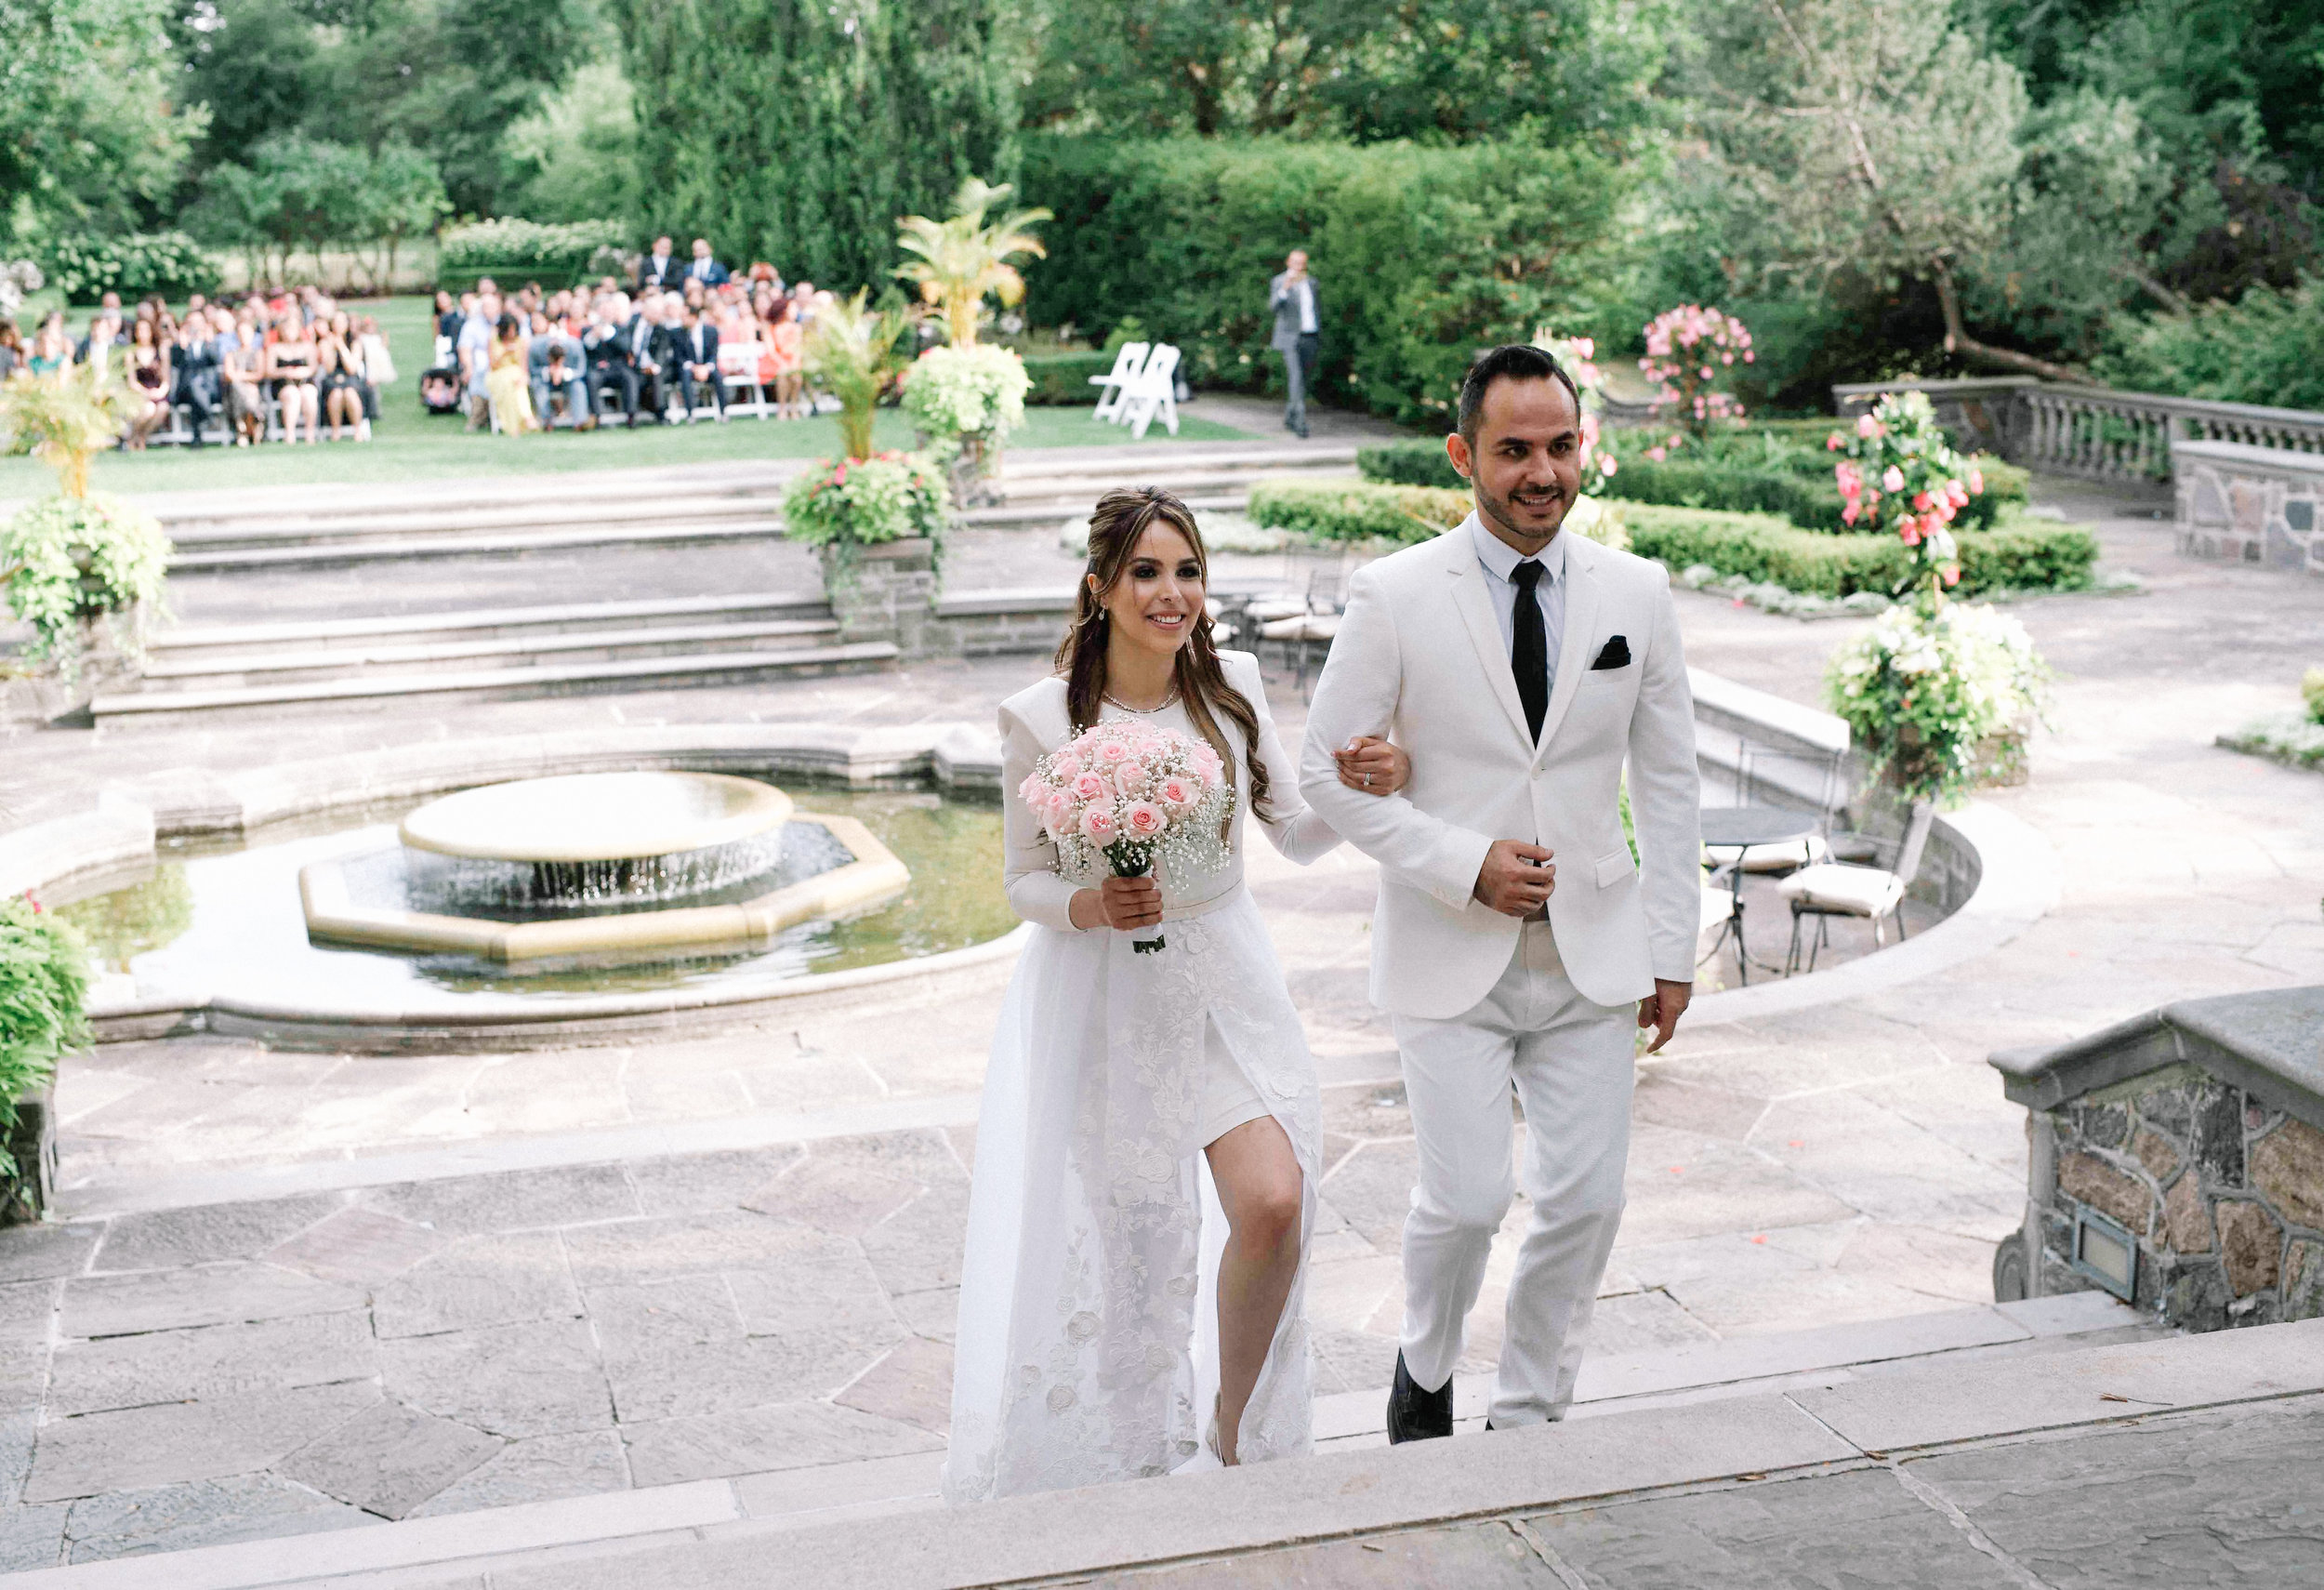 Epic Wedding Photo Graydon Hall Manor in Toronto